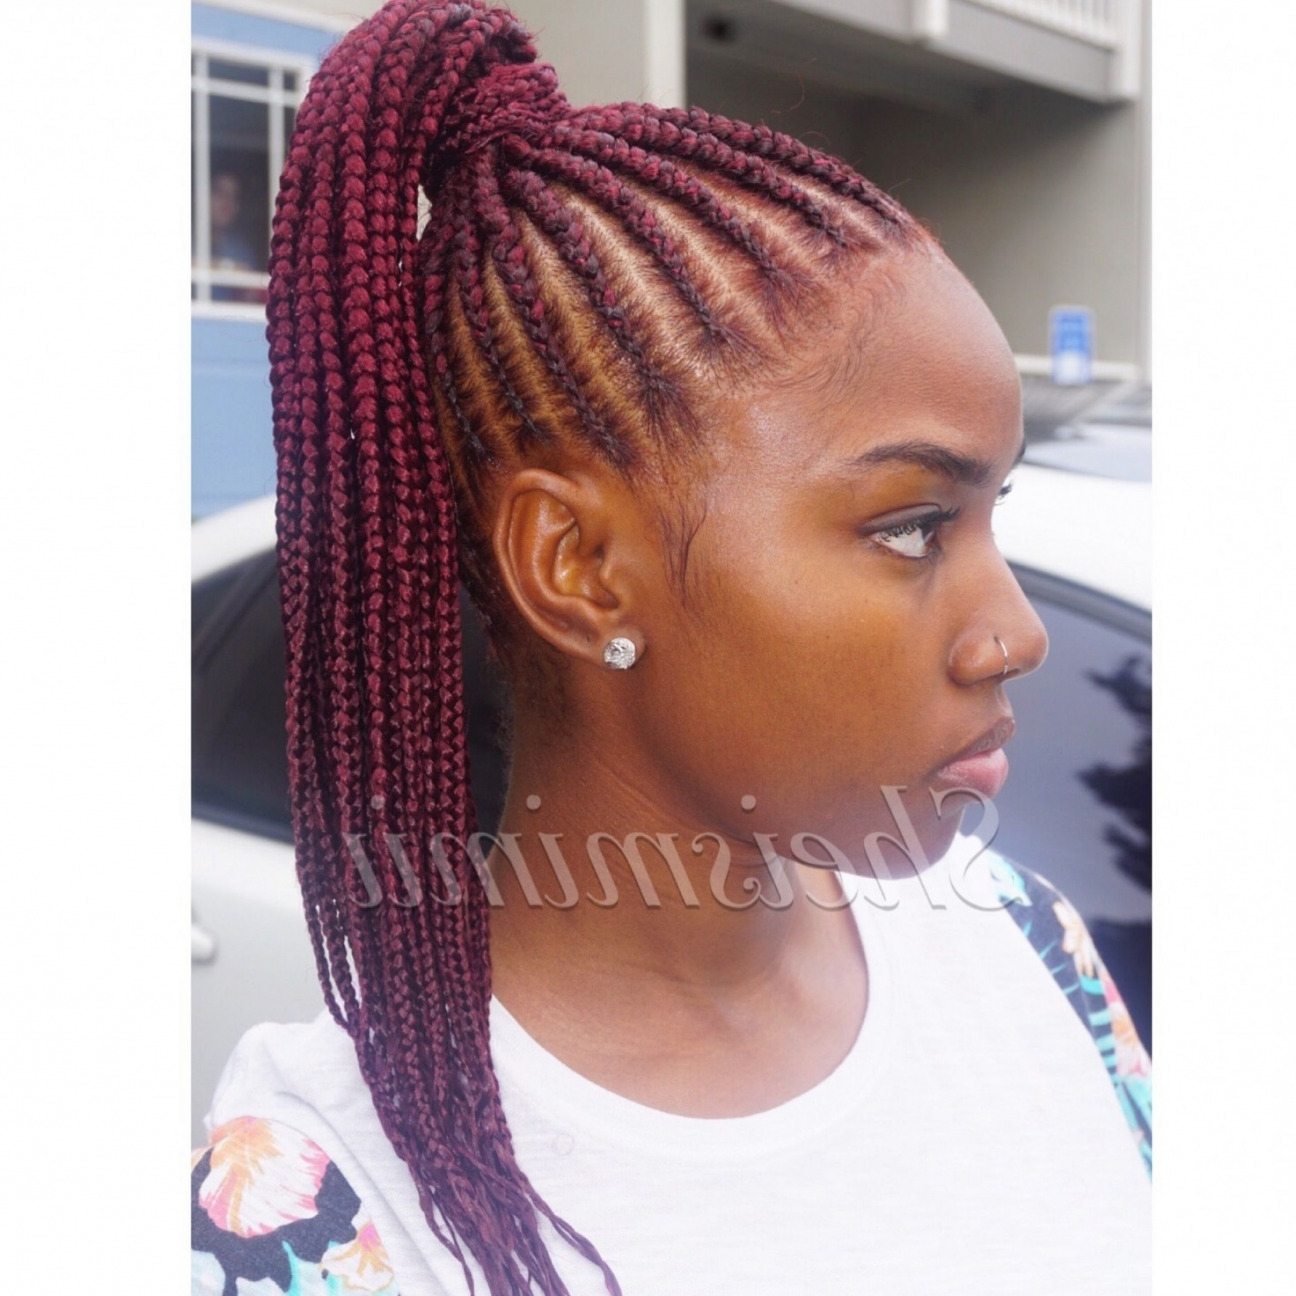 Trendy Updo Cornrows Hairstyles In Updo Cornrow Hairstyles For Black Women Unique Stunningly Cute Ghana (View 12 of 15)